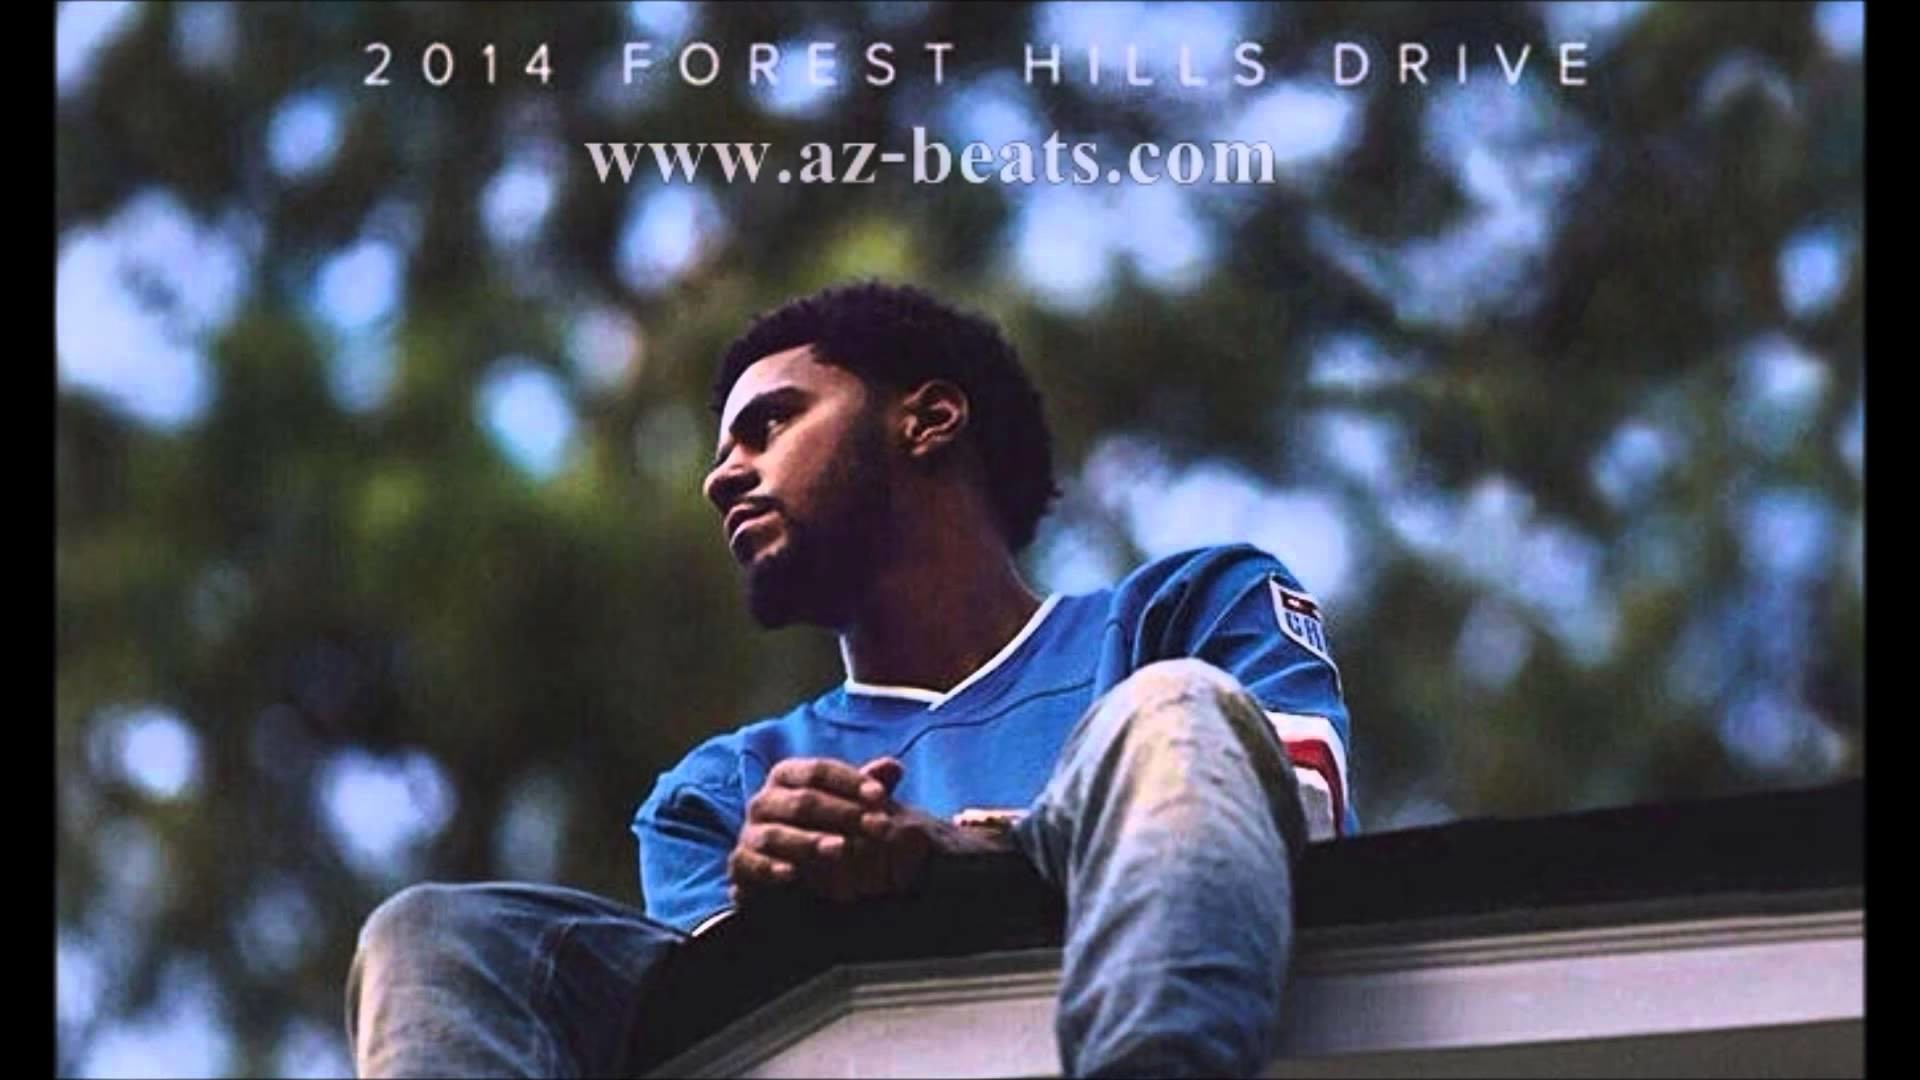 J Cole – Forest Hills Drive Type Beat – The Family (Prod. By AzBeats) –  YouTube